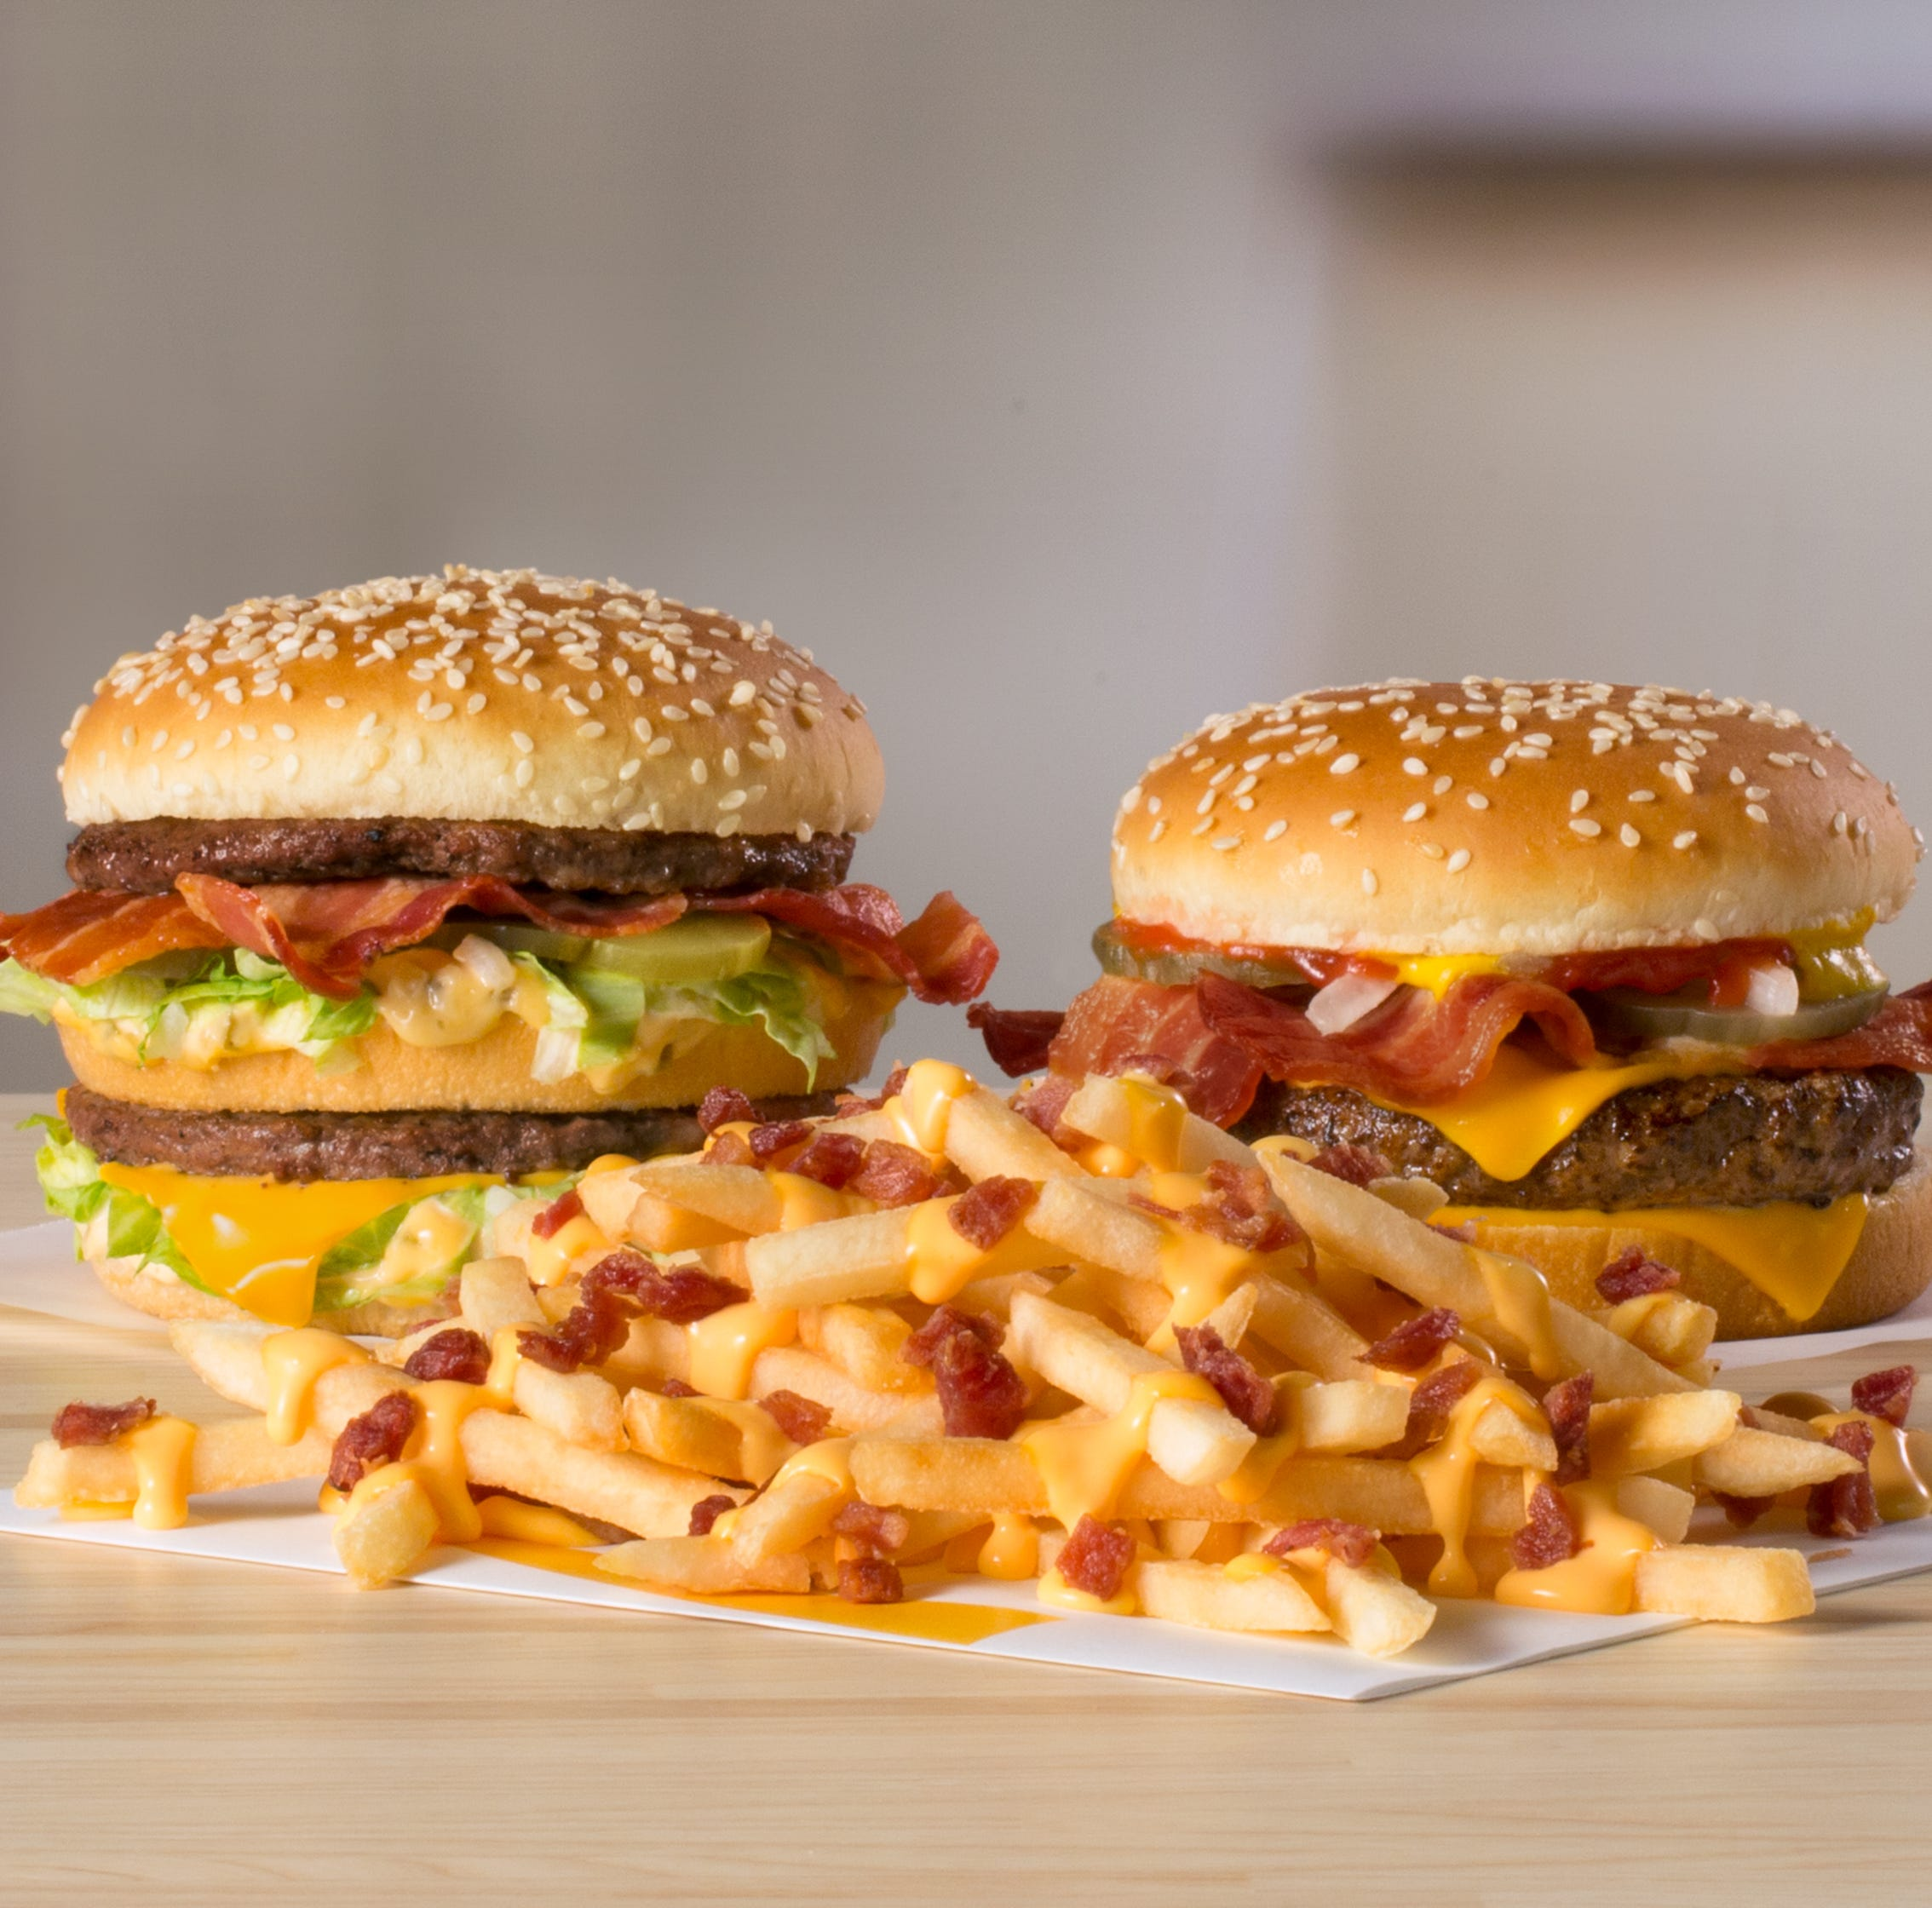 Freebie alert! McDonald's Bacon Hour means free bacon on Tuesday